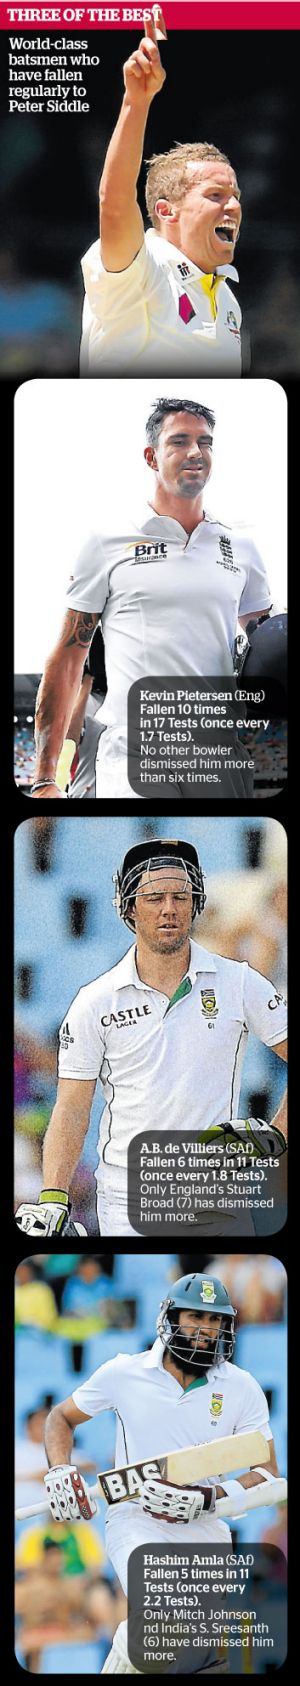 Peter Siddle's elite victims.